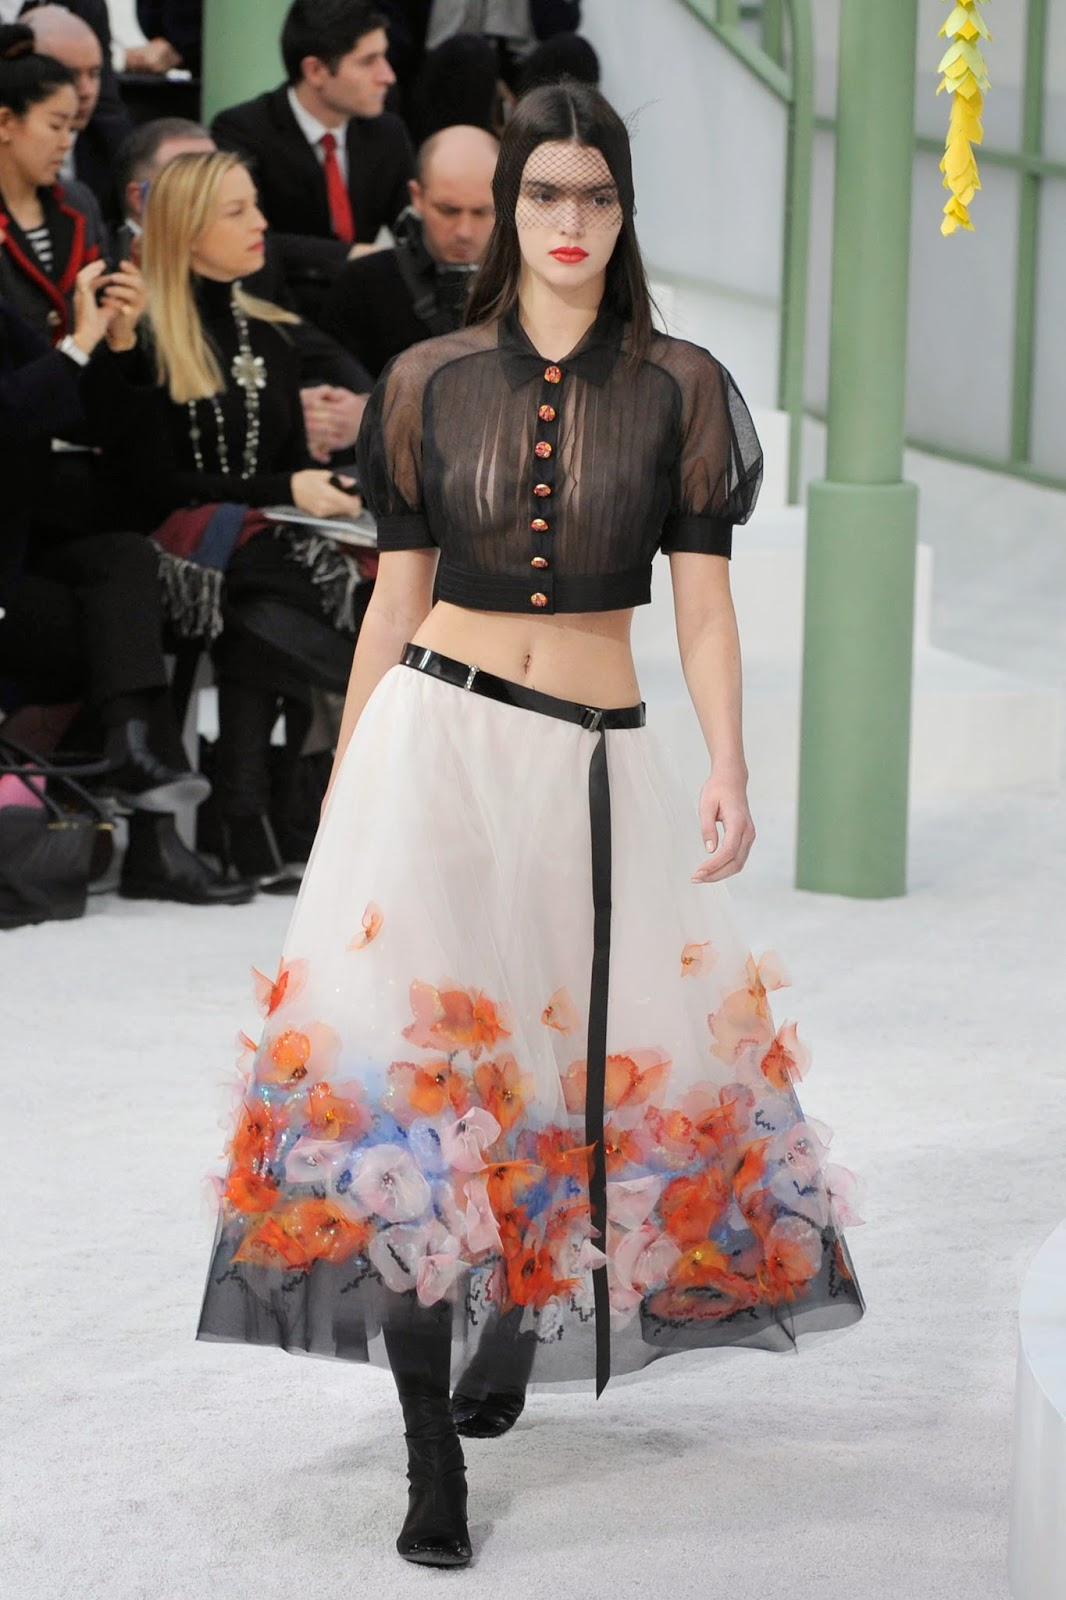 Fashion Through The Decades: Kendall Jenner See-Through Top At Chanel Fashion Show In